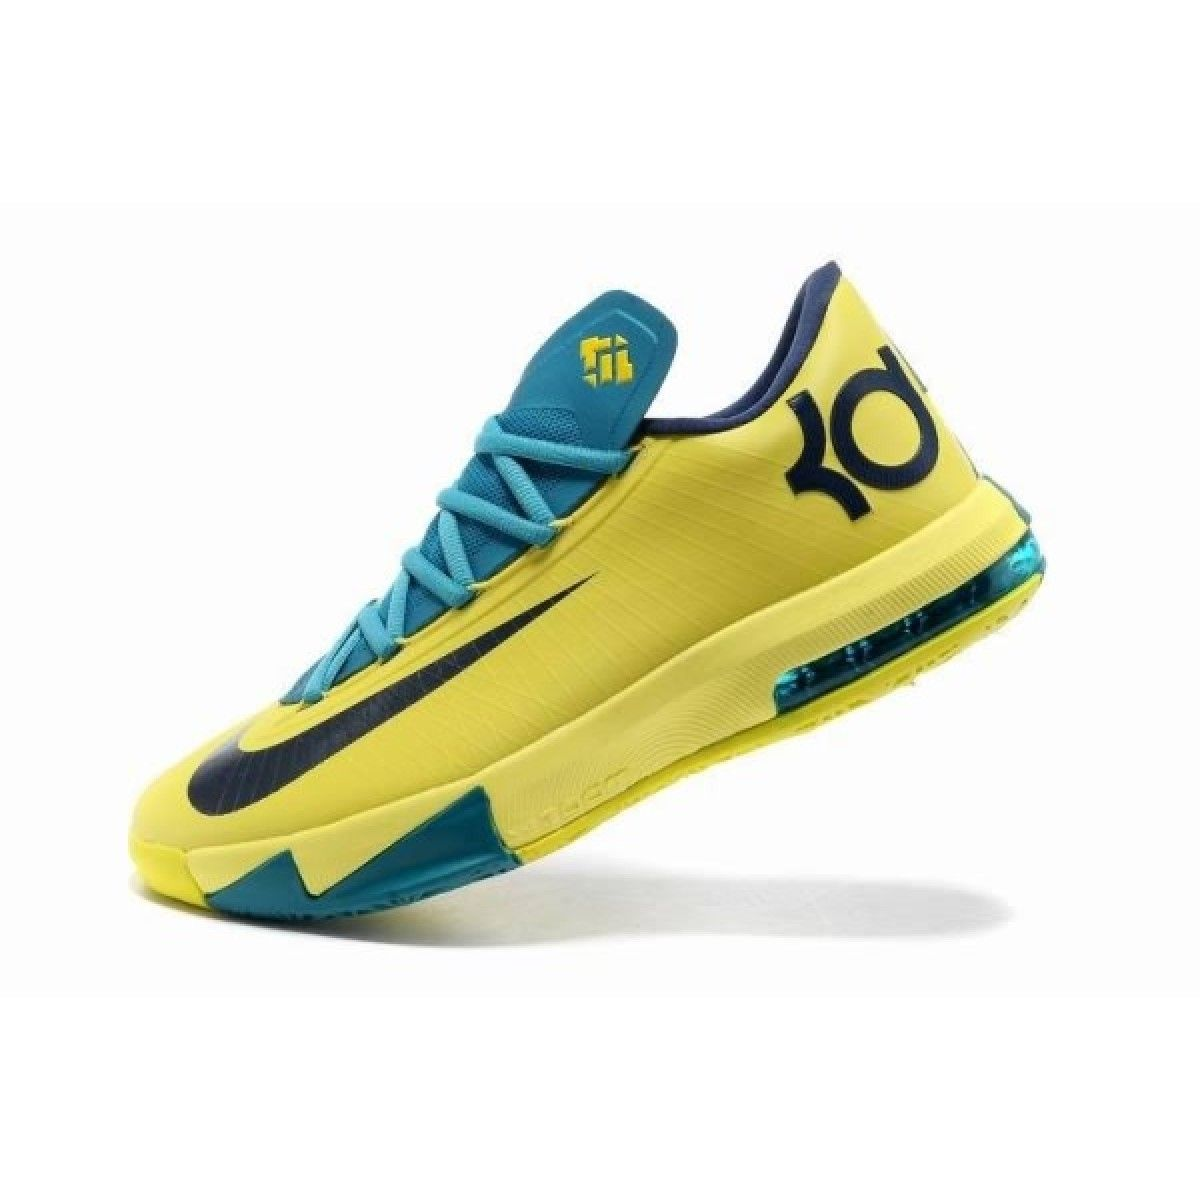 the best attitude 5c655 3df3f kd low top basketball shoes   More Views   Basketball Shoes   Pinterest    Top basketball shoes and Nike zoom